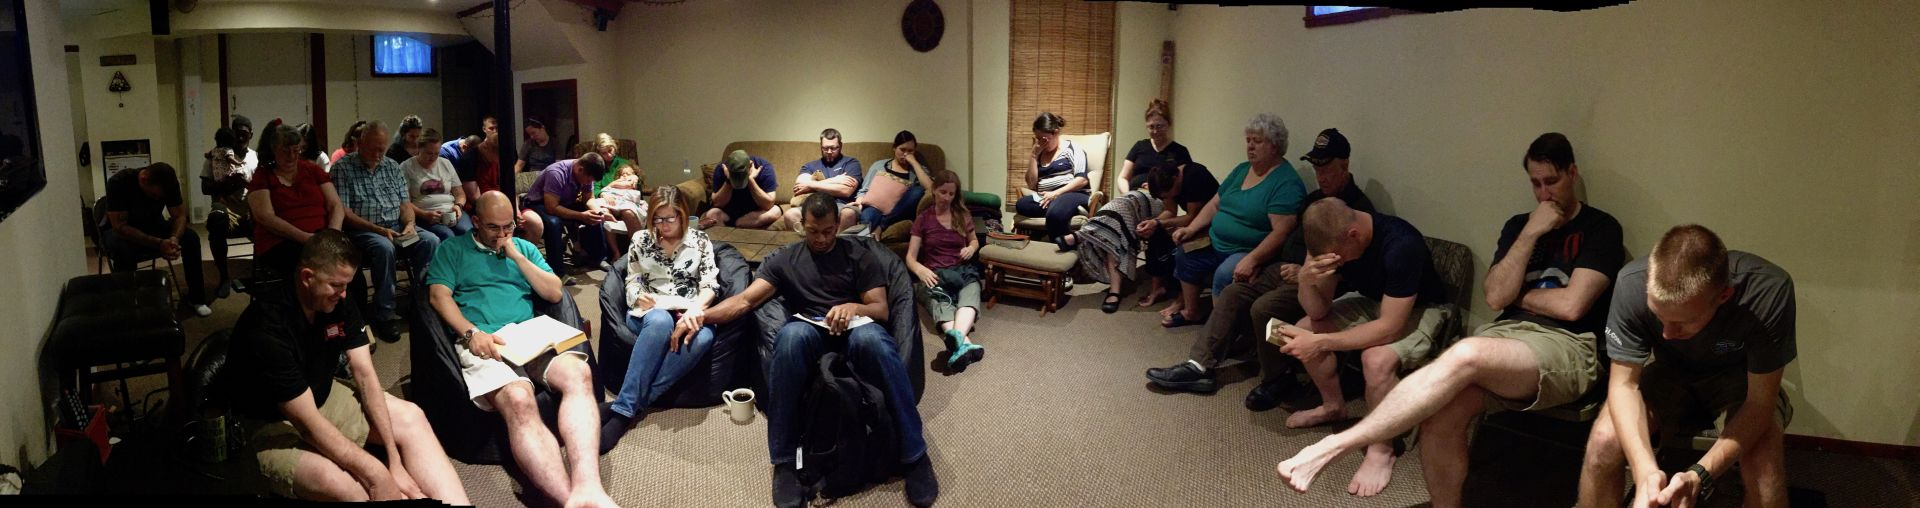 Bible study in the cool of the basement - aug 2017